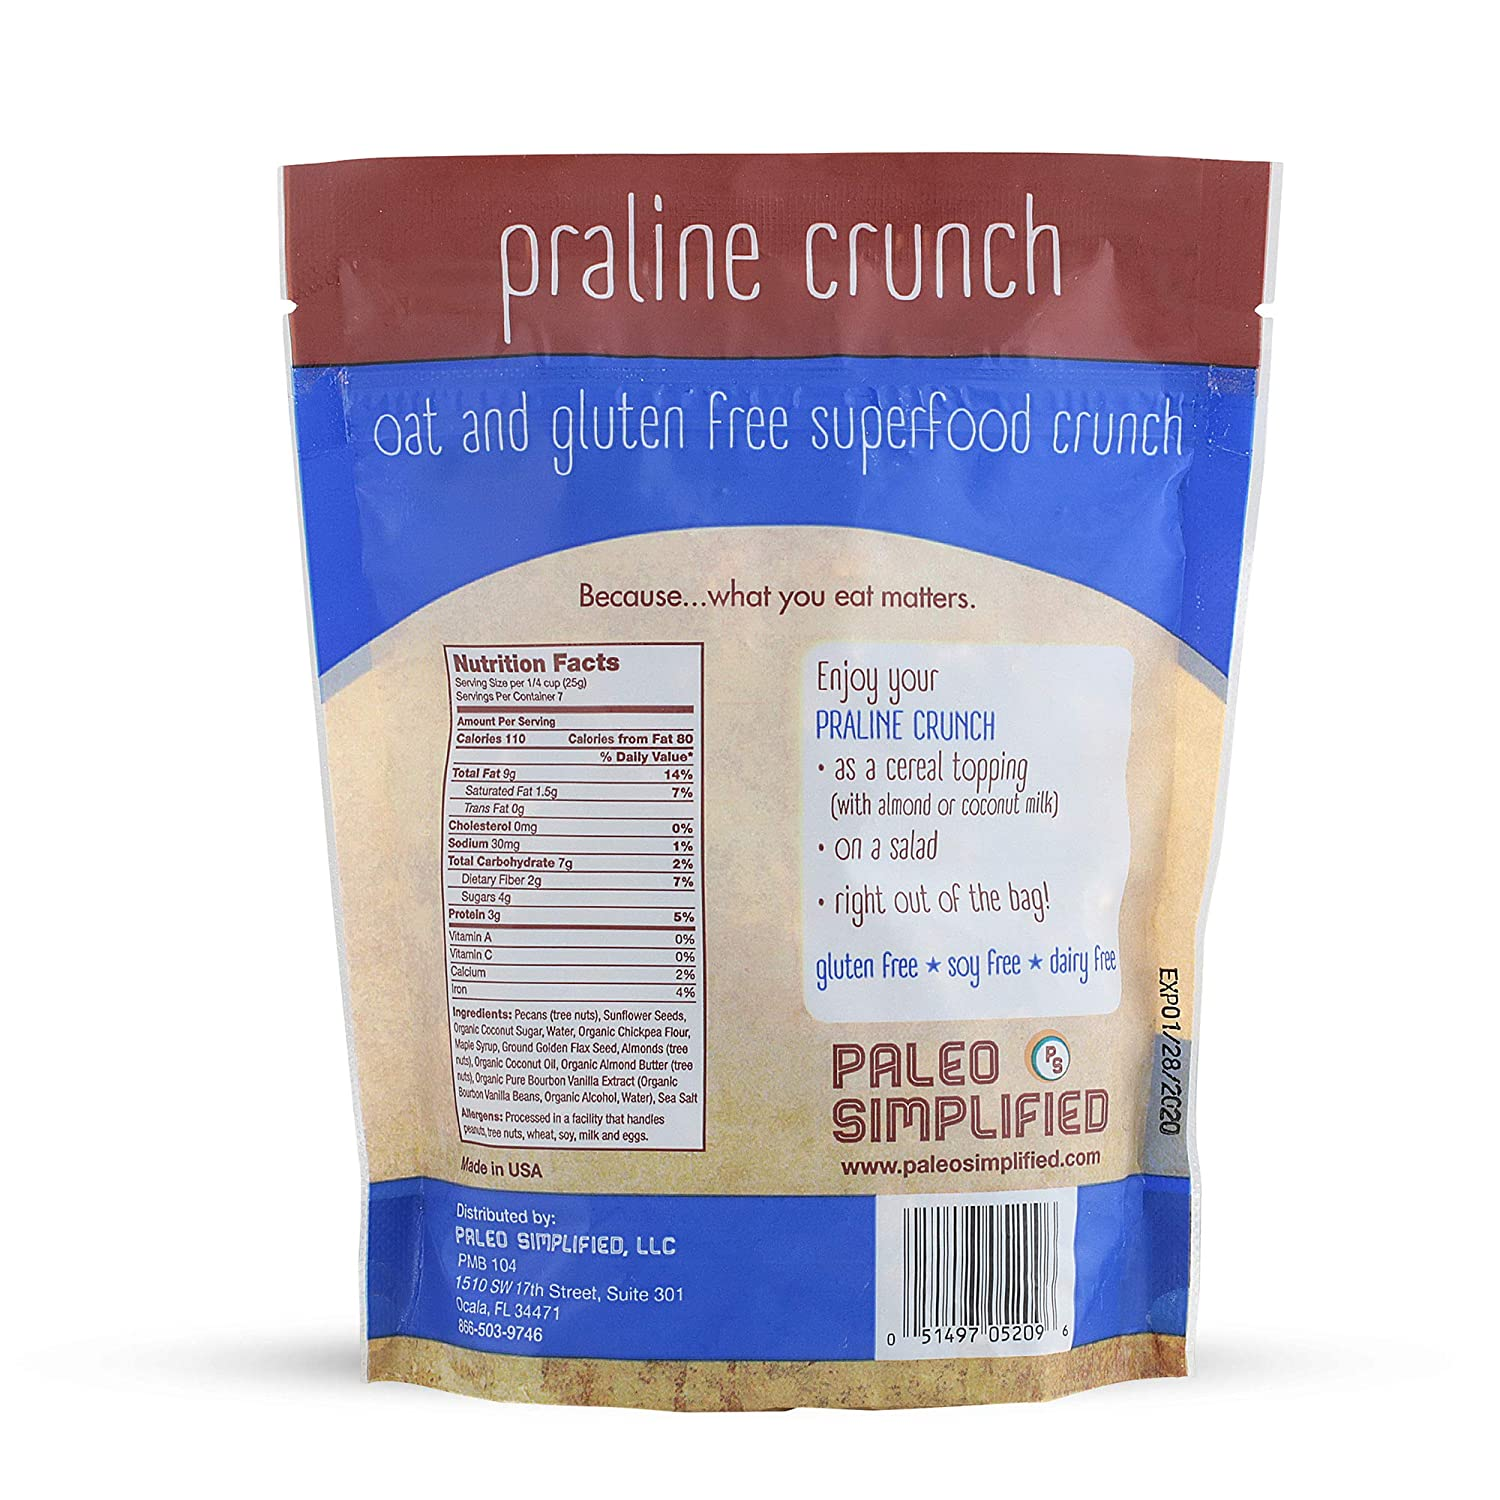 Paleo Simplified Praline Crunch Granola, Organic, Gluten Free, Grain Free, Soy Free, Dairy Free, Vegan, Paleo Snack Food, 6.5 ounces (1 Pack)